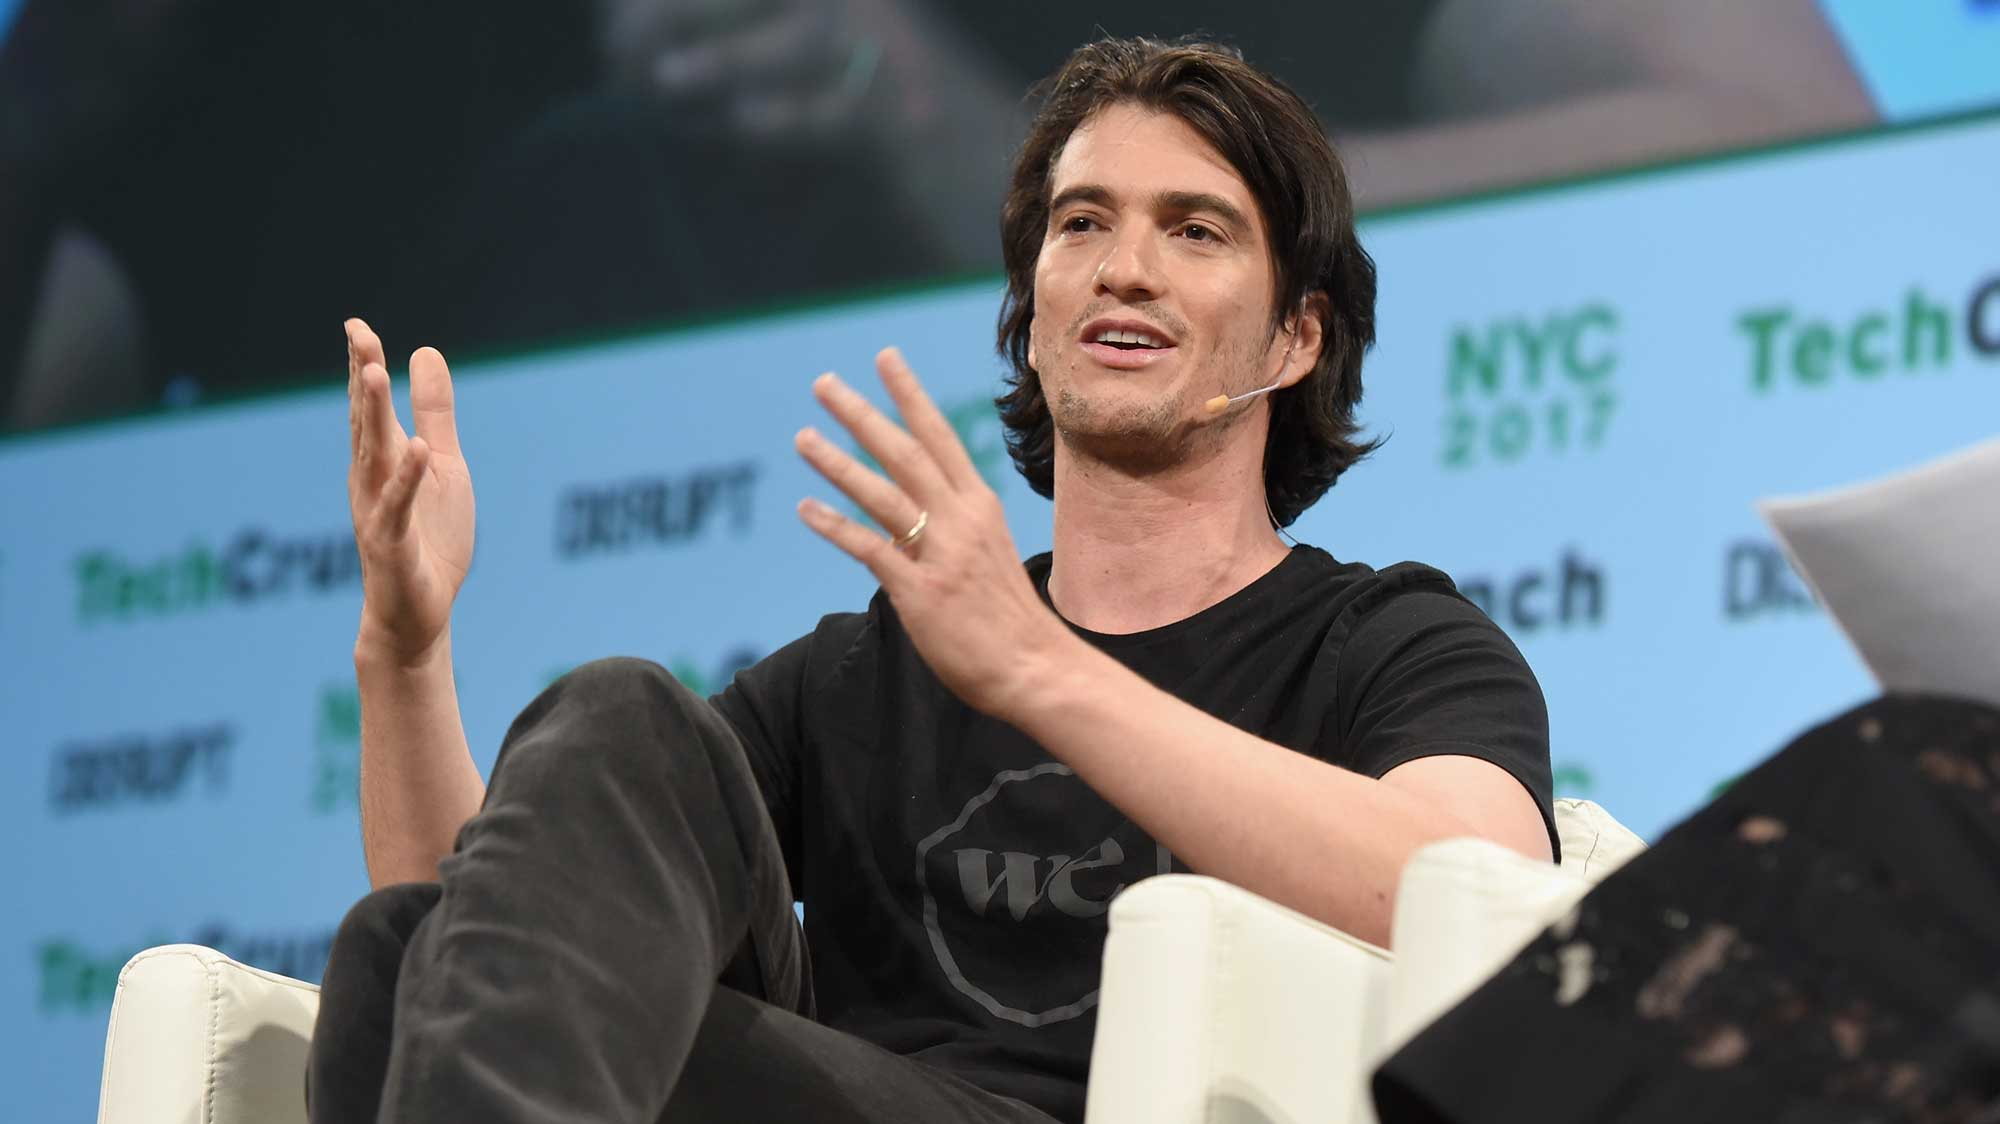 The WeWork IPO is full speed ahead with roadshow to kick off as soon as Monday, sources say